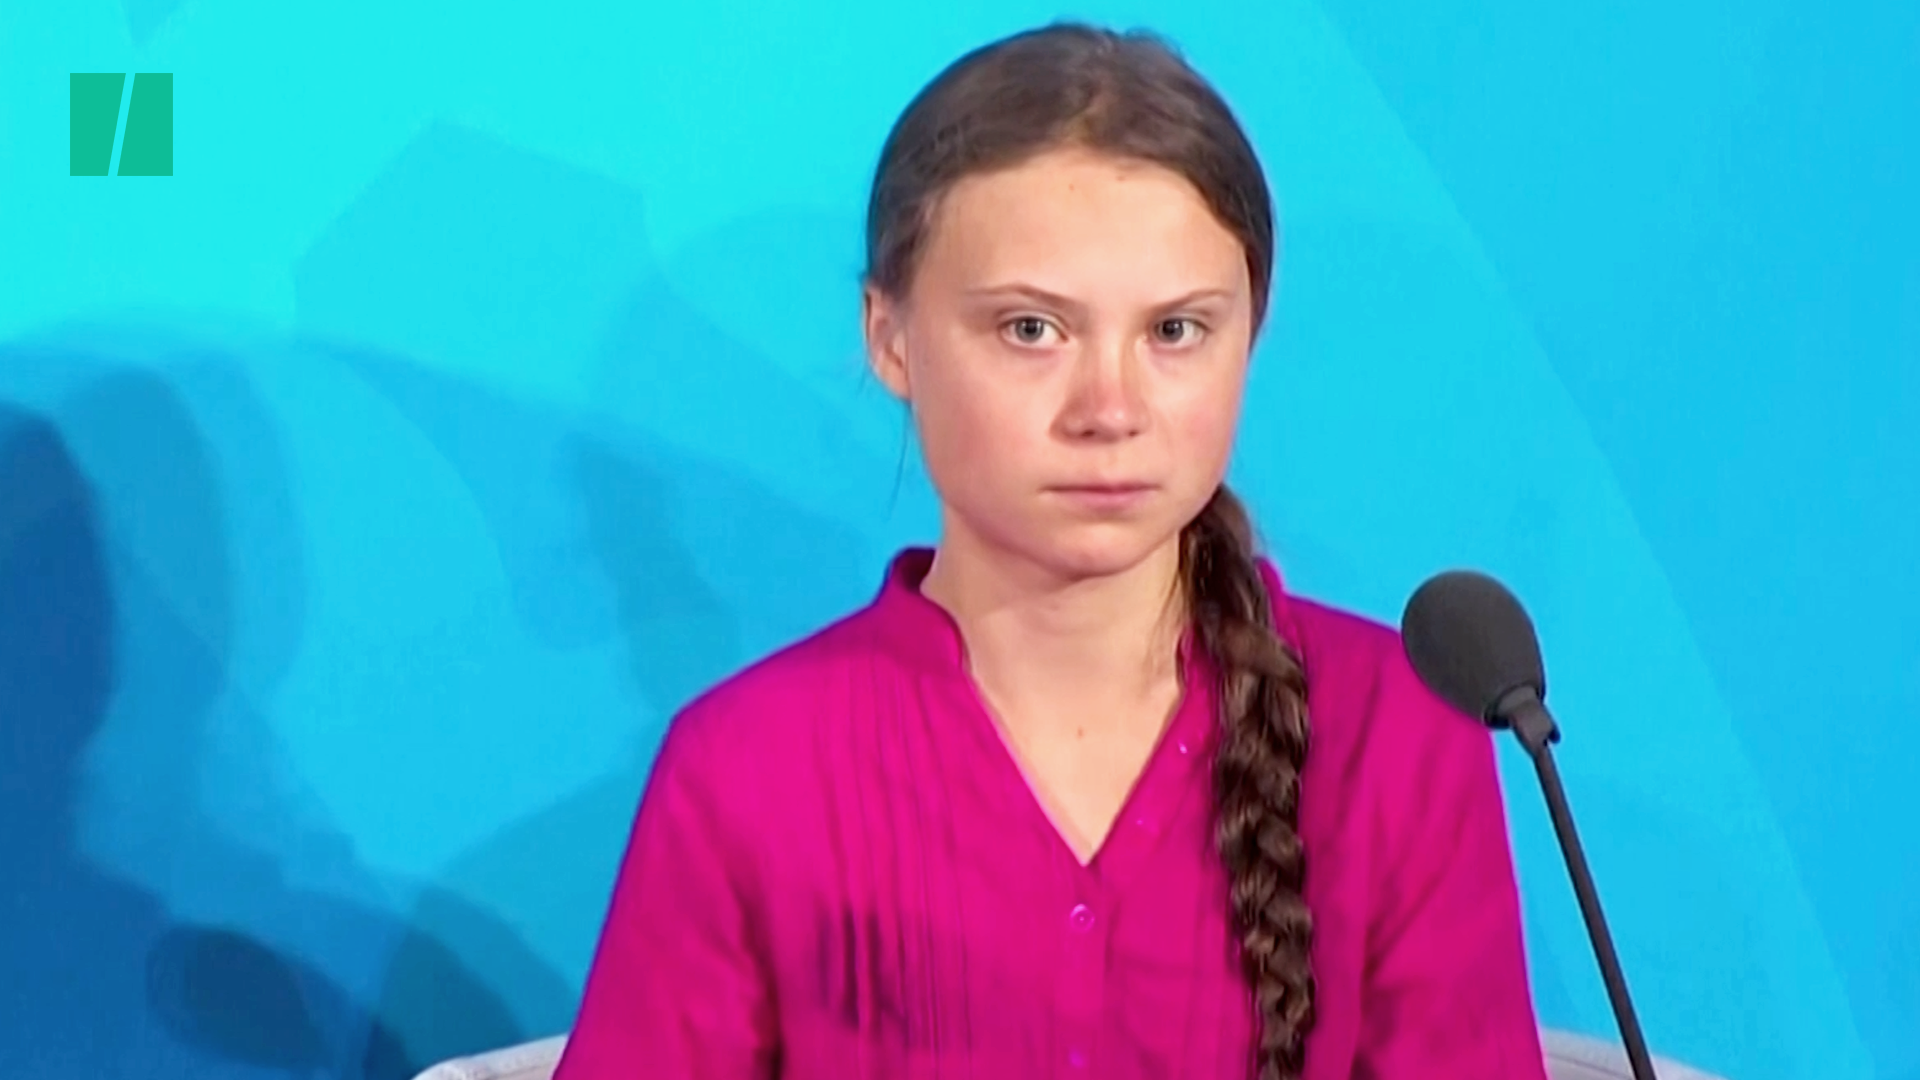 Jeremy Clarkson Brands Greta Thunberg A 'Spoilt Brat' And Tells Her To 'Go Back To School'